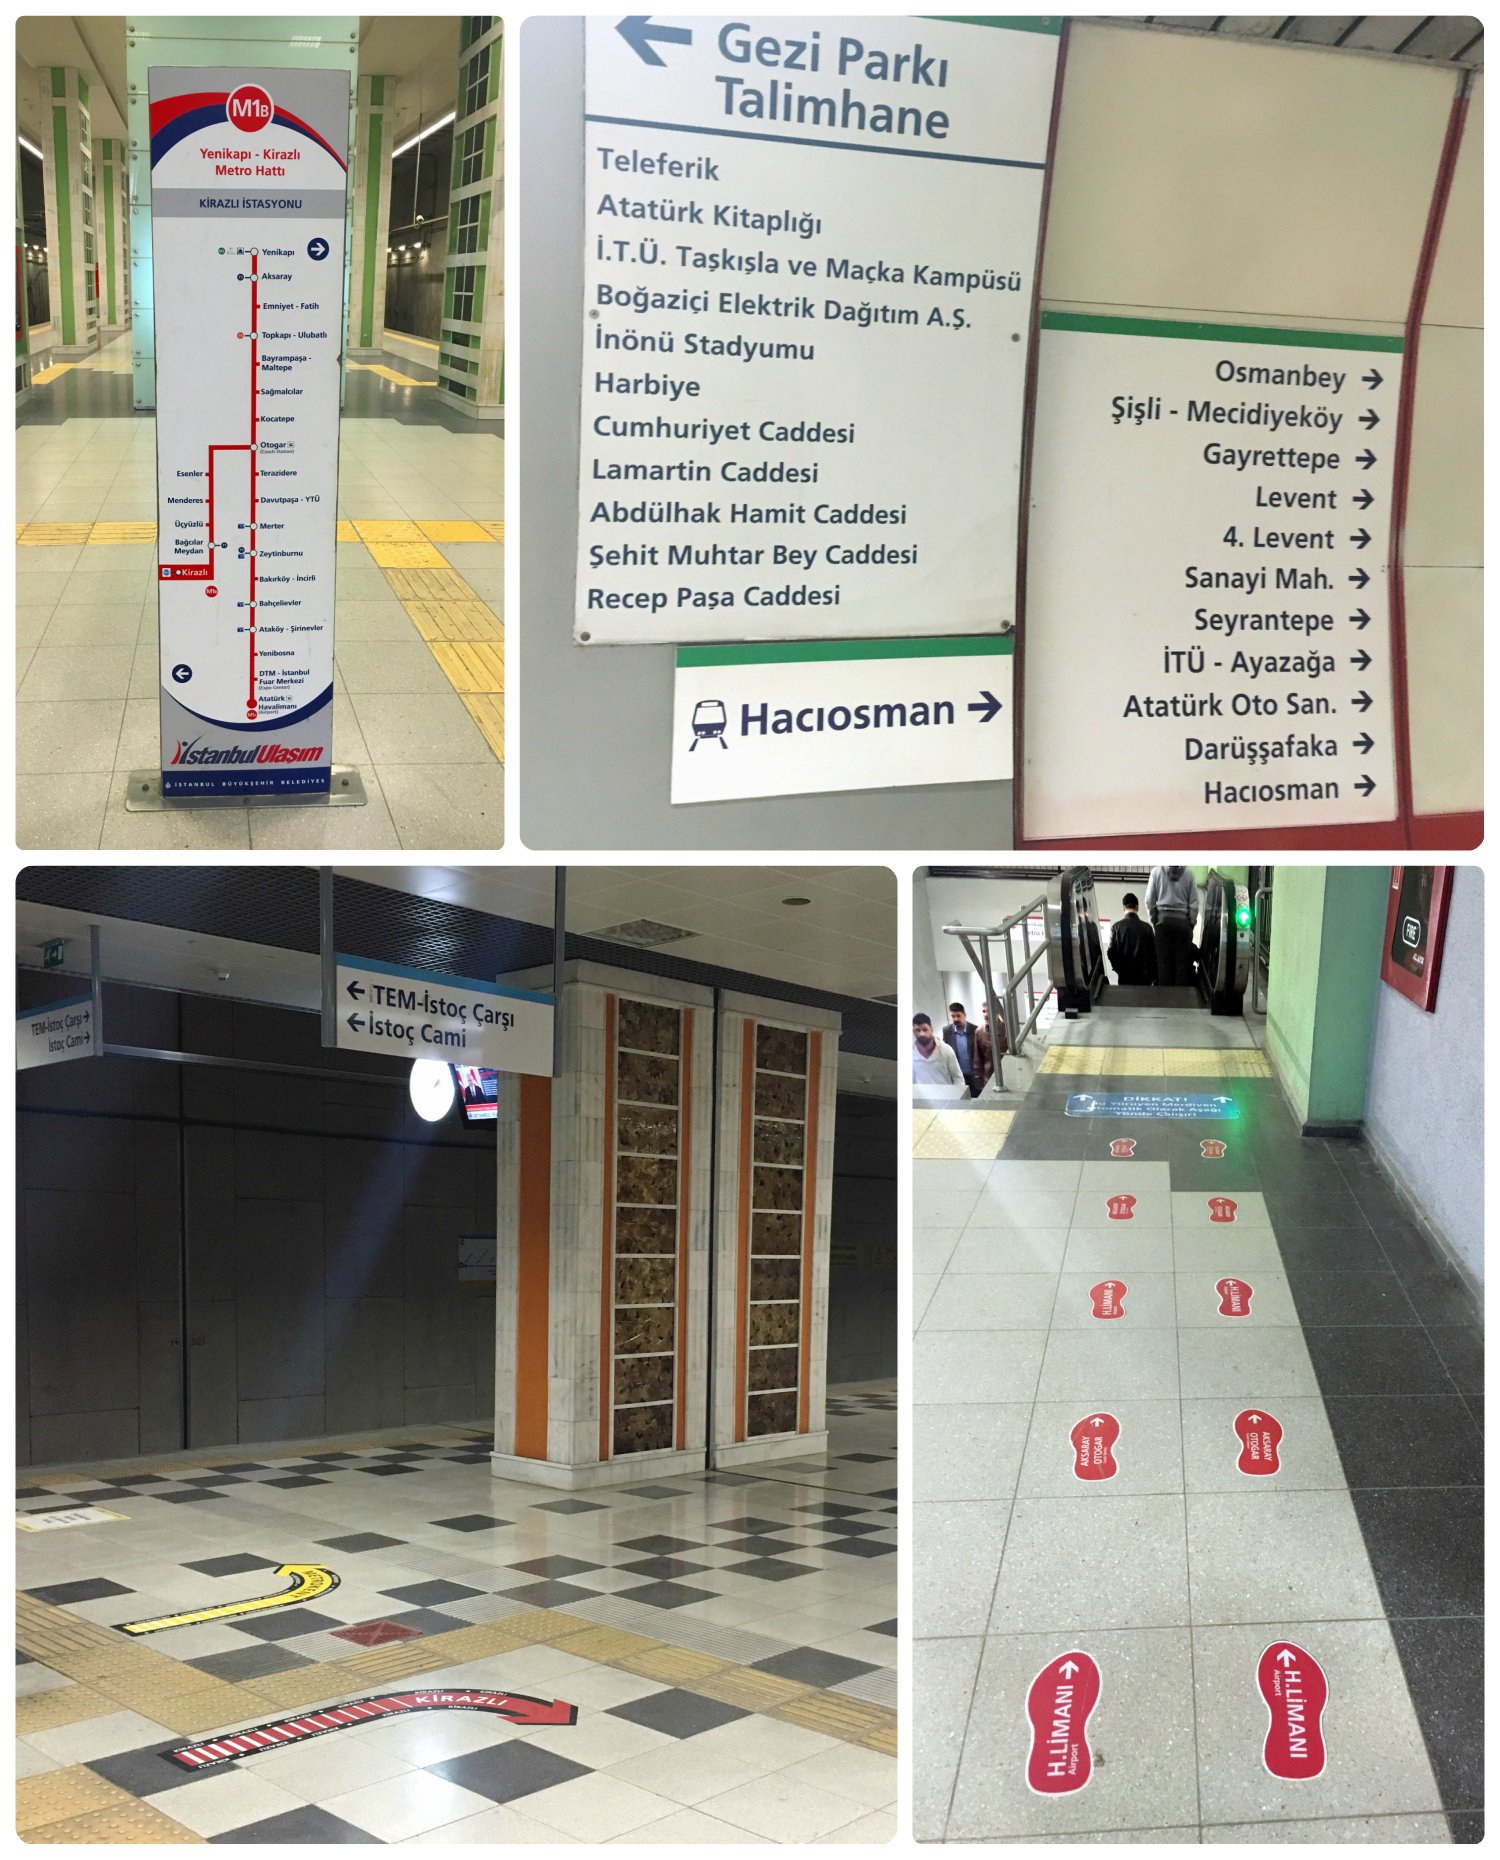 Top : Route maps for different lines are located throughout the station and are color coded to match the color of the line.  Bottom : In large stations, footprints and arrows indicated the direction to go, to get to the correct platform.